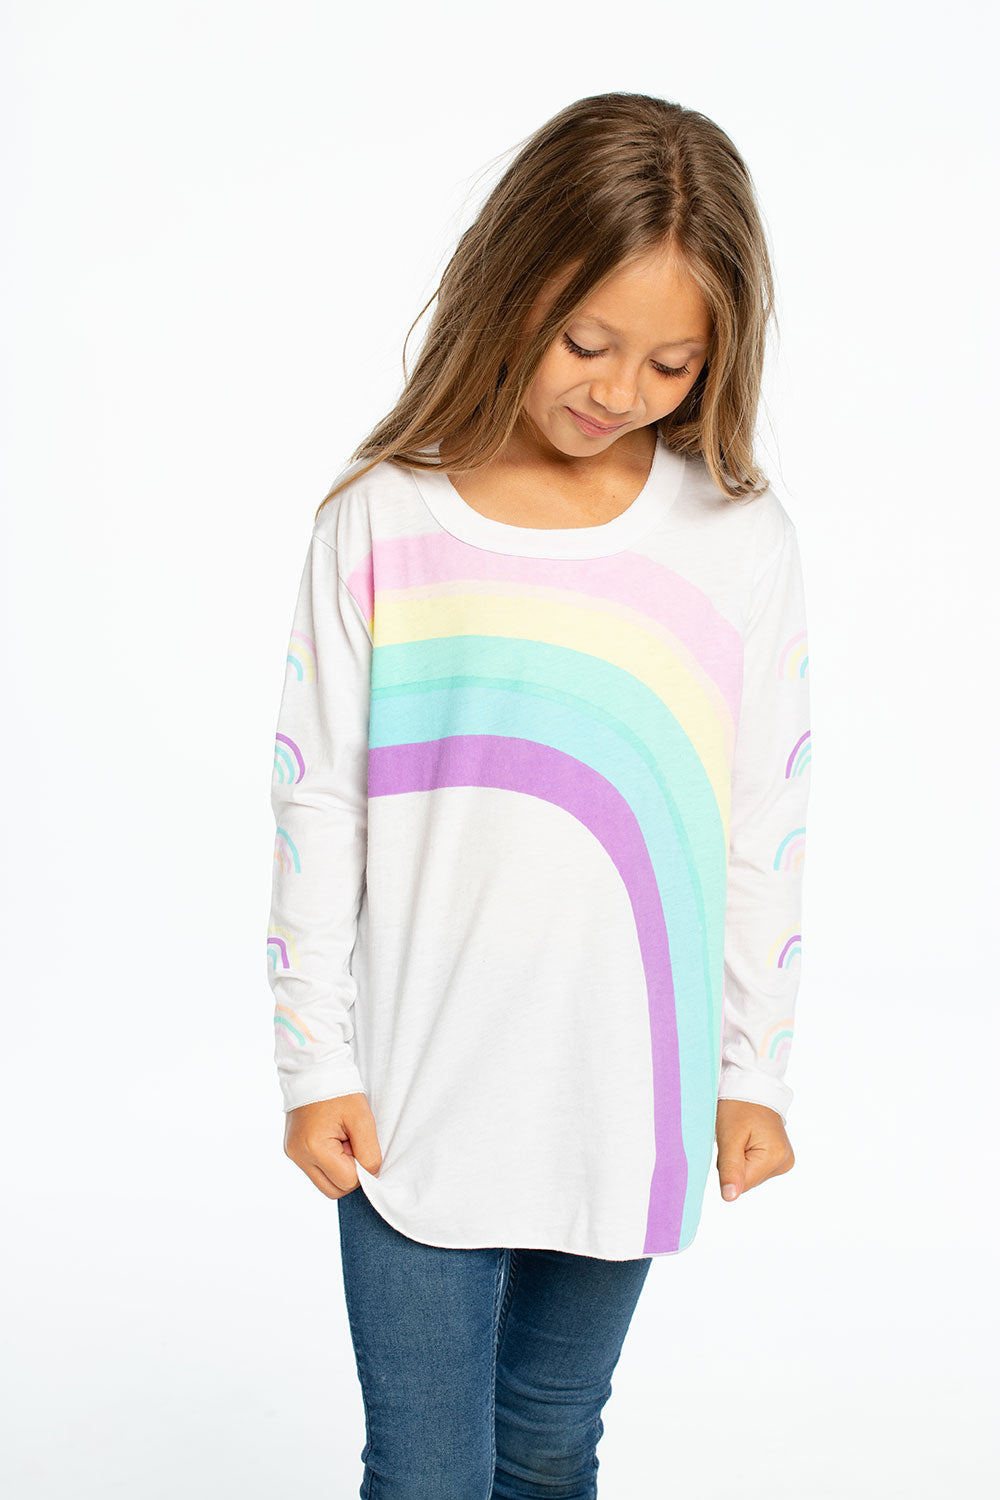 Rainbows GIRLS chaserbrand4.myshopify.com